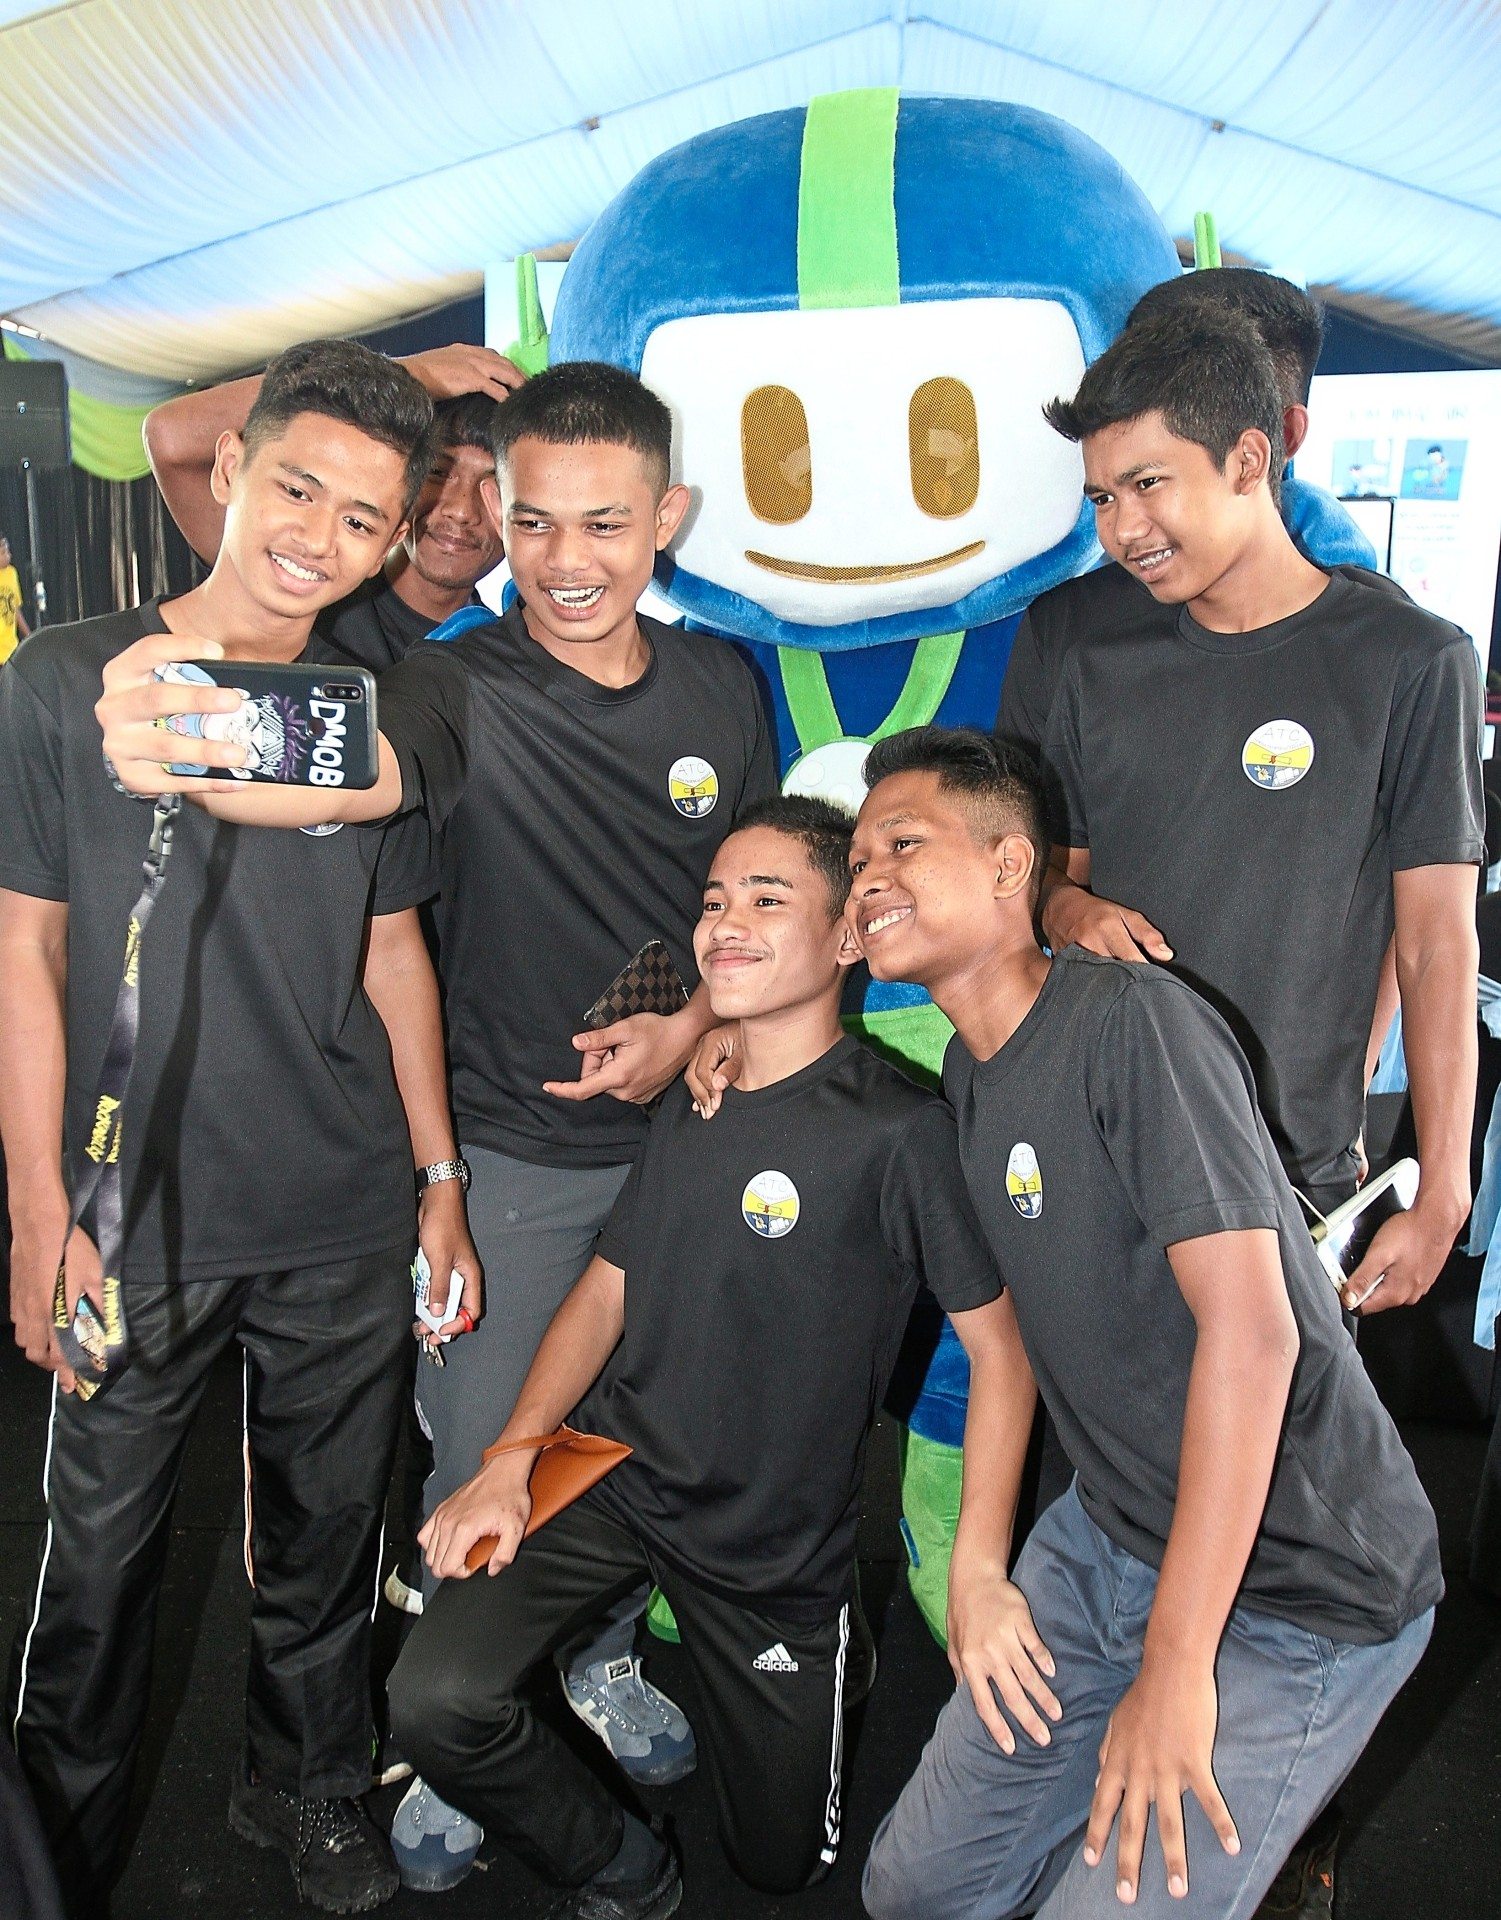 Students from Azmida Technical College taking a wefie with Mat Bidal.